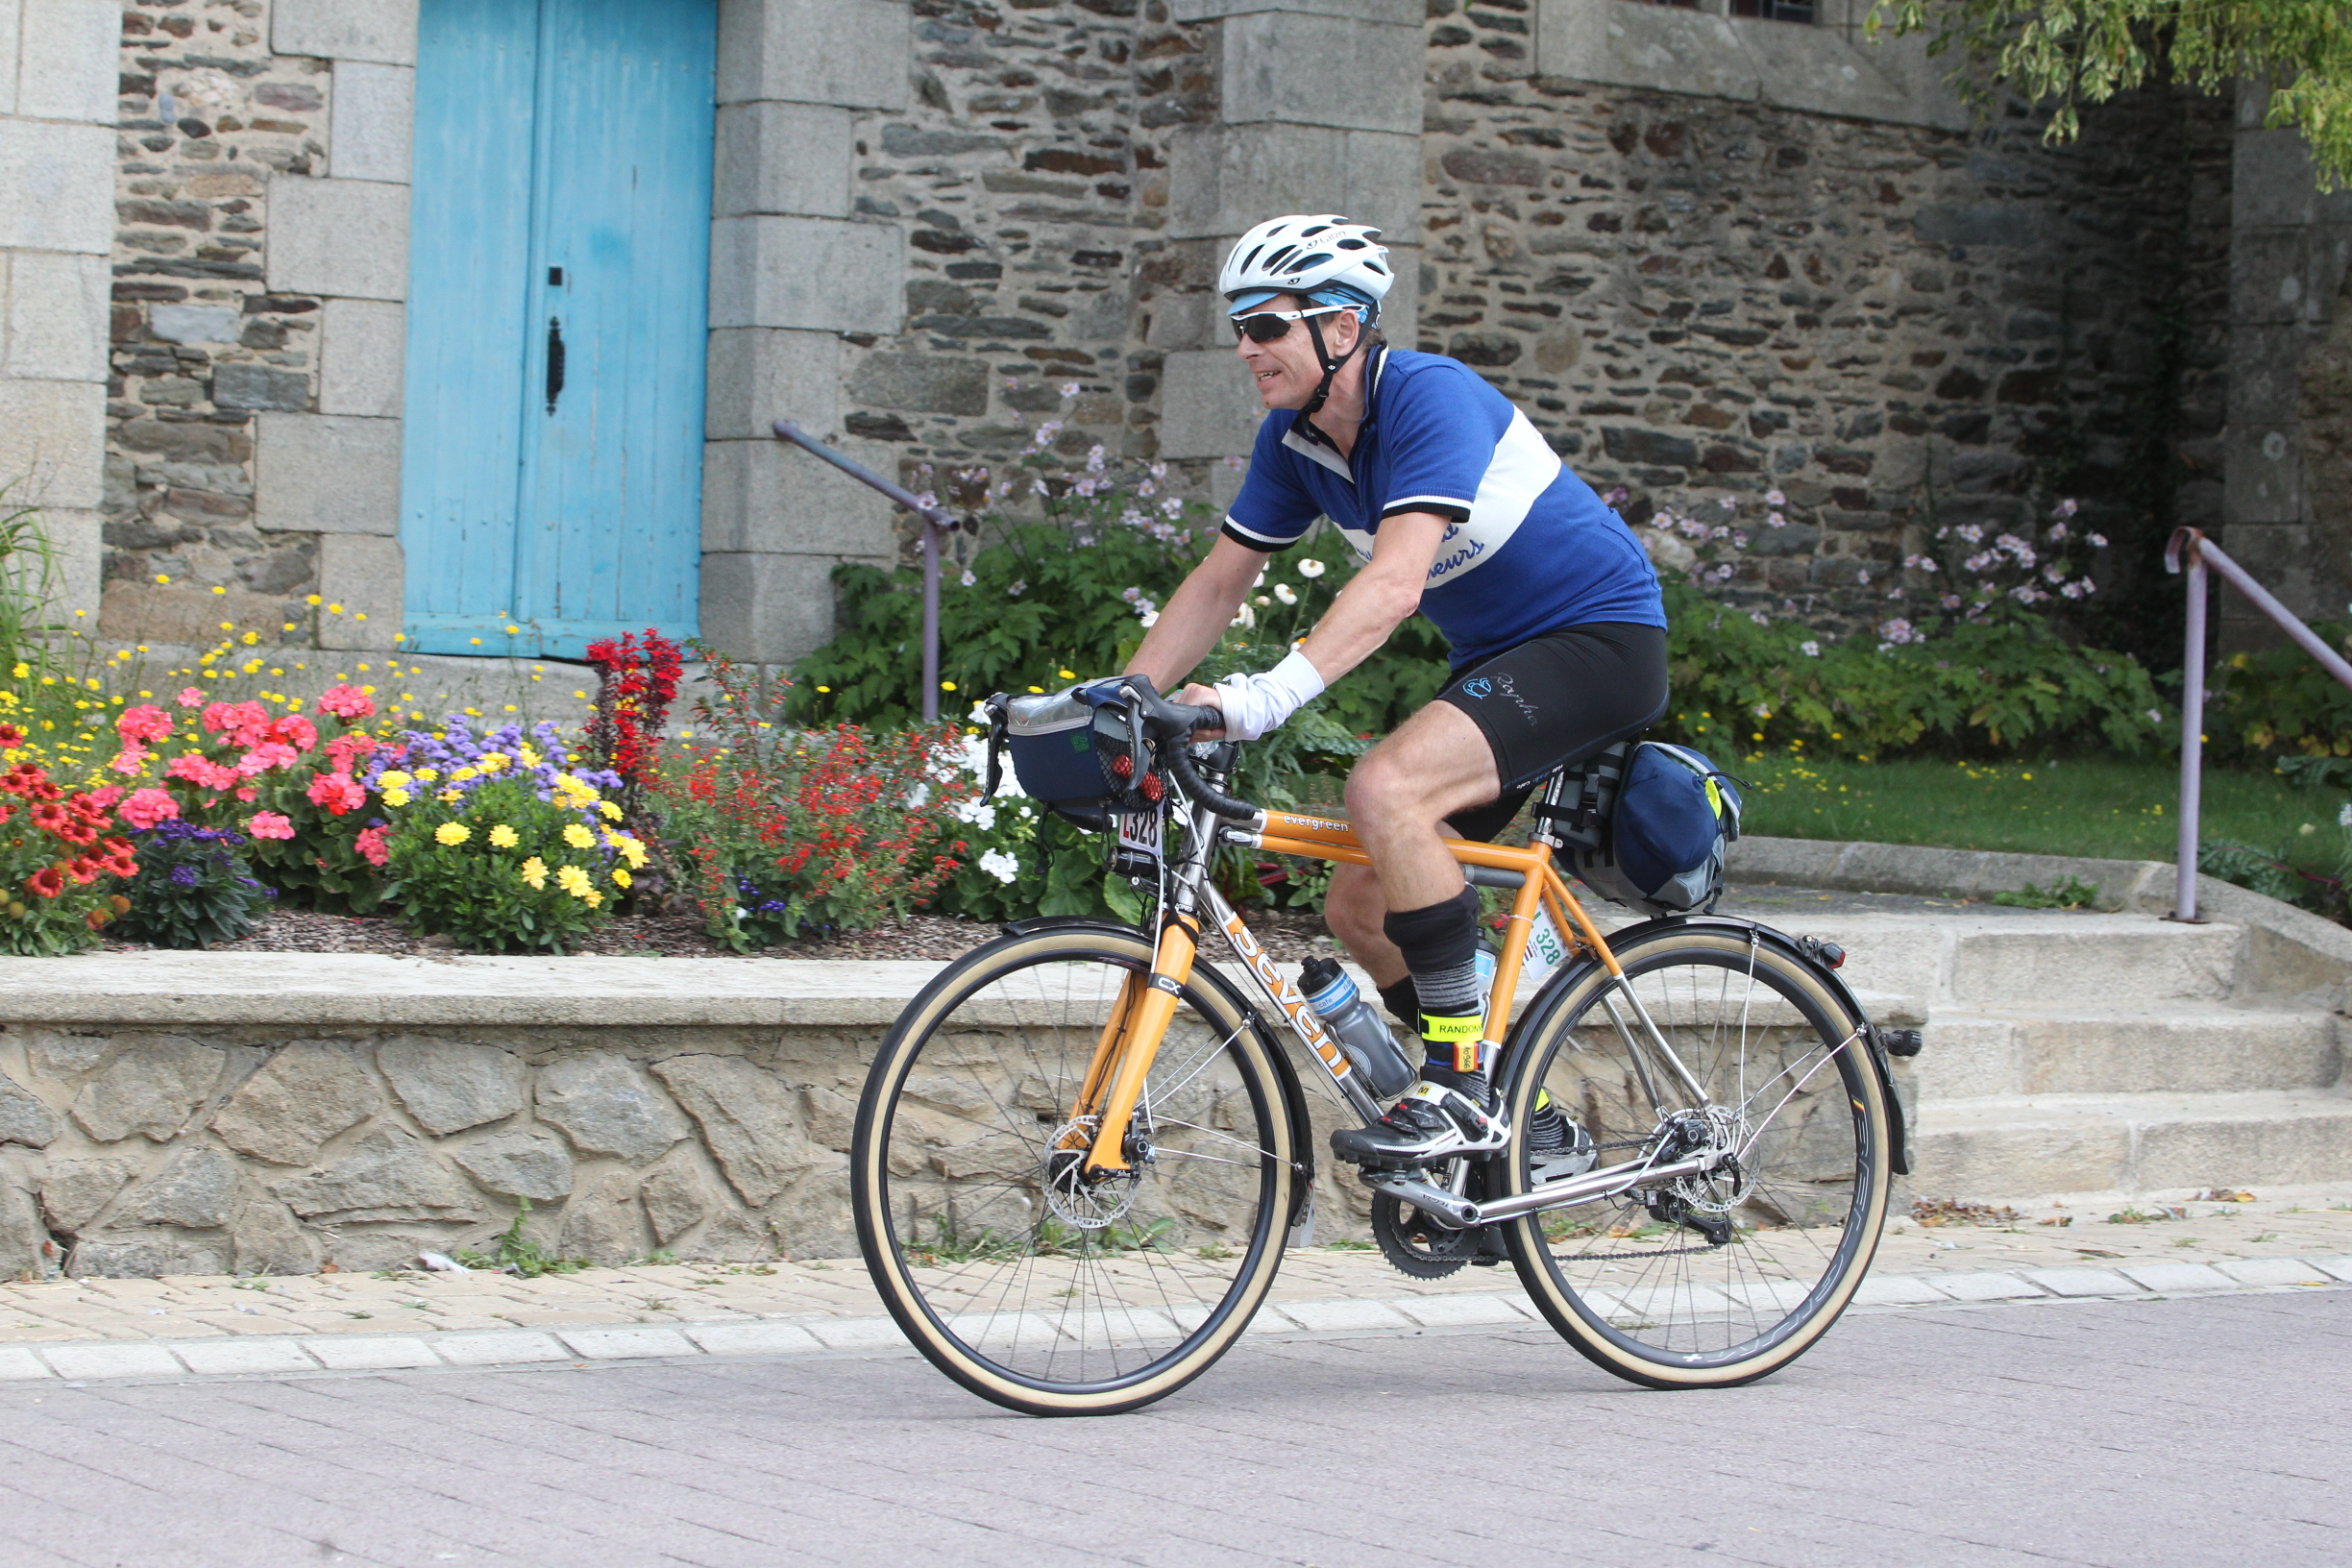 Henry on course during the Paris-Brest-Paris 2016